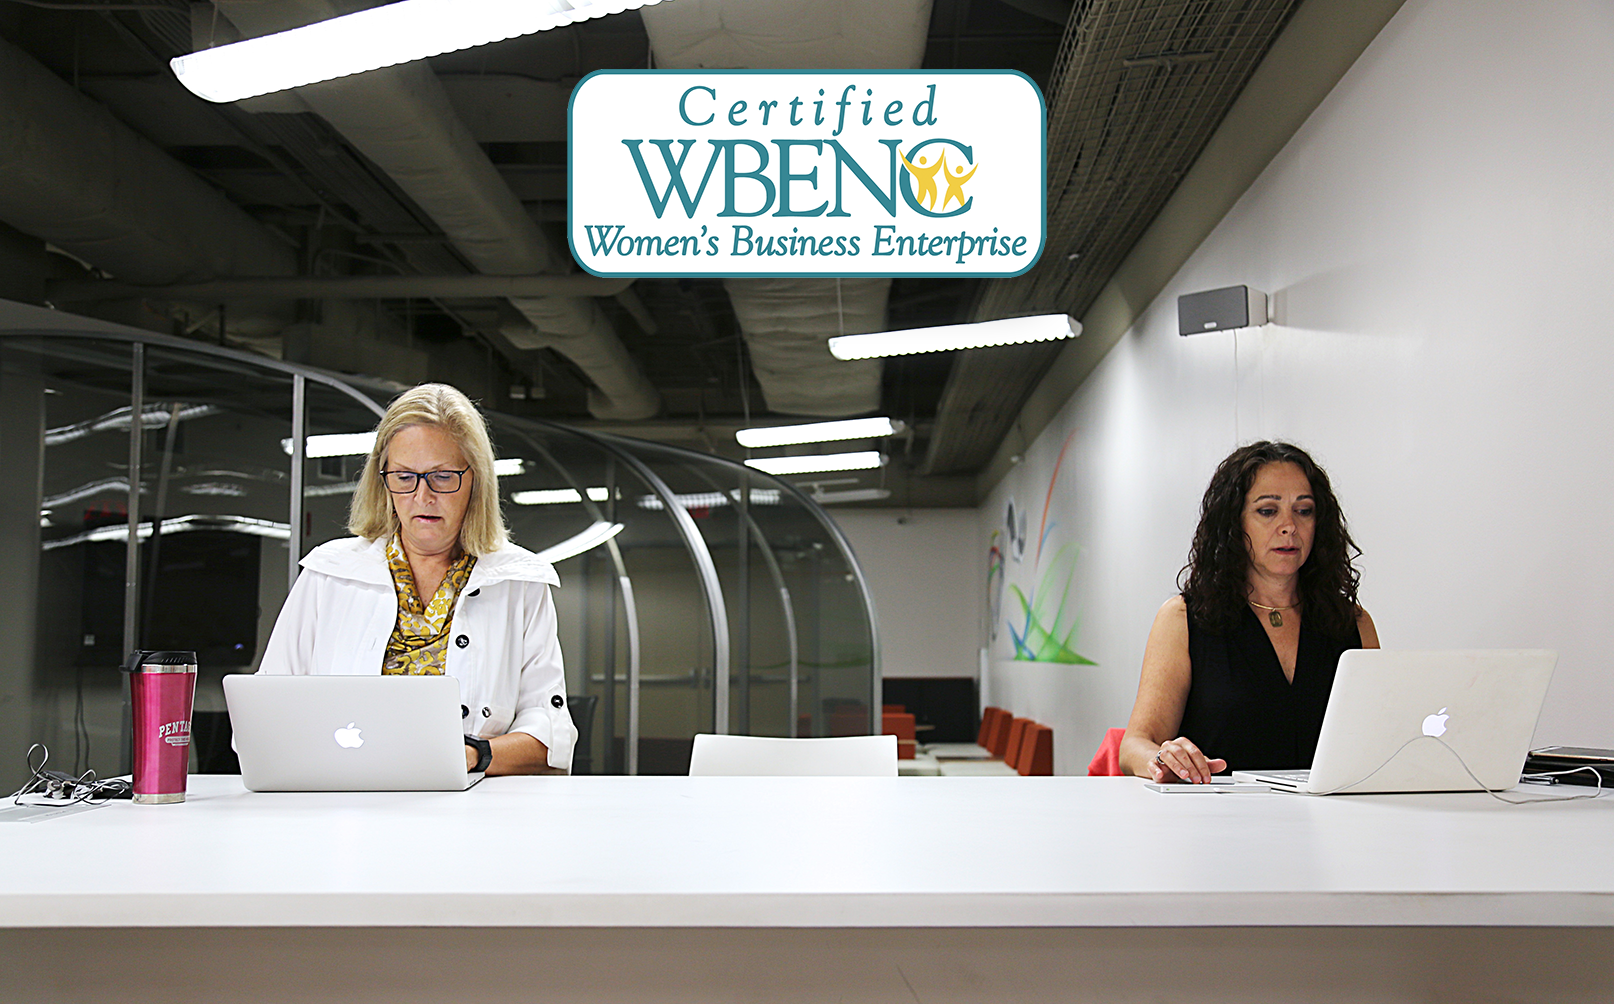 Destination Better is a certified WBENC organization. Learn more!